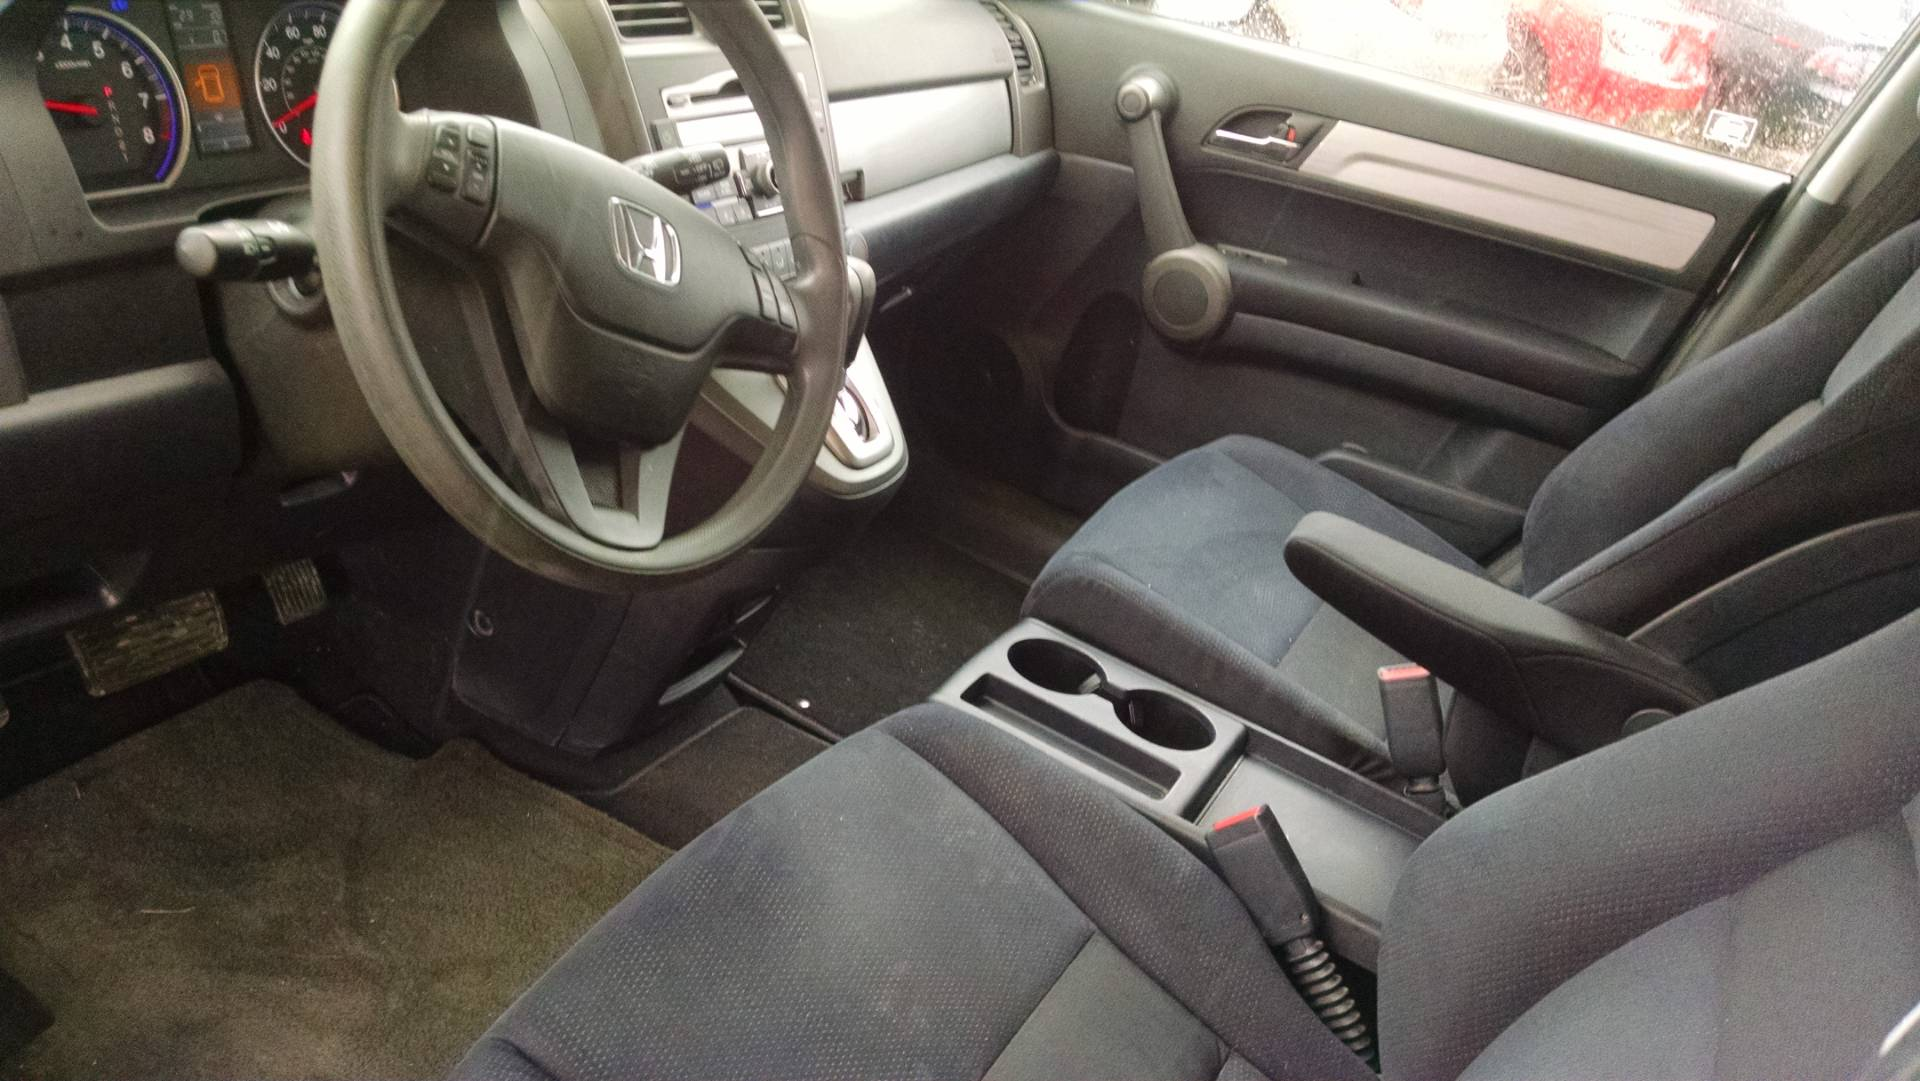 2011 Honda CRV in Harmony, Pennsylvania - Photo 9